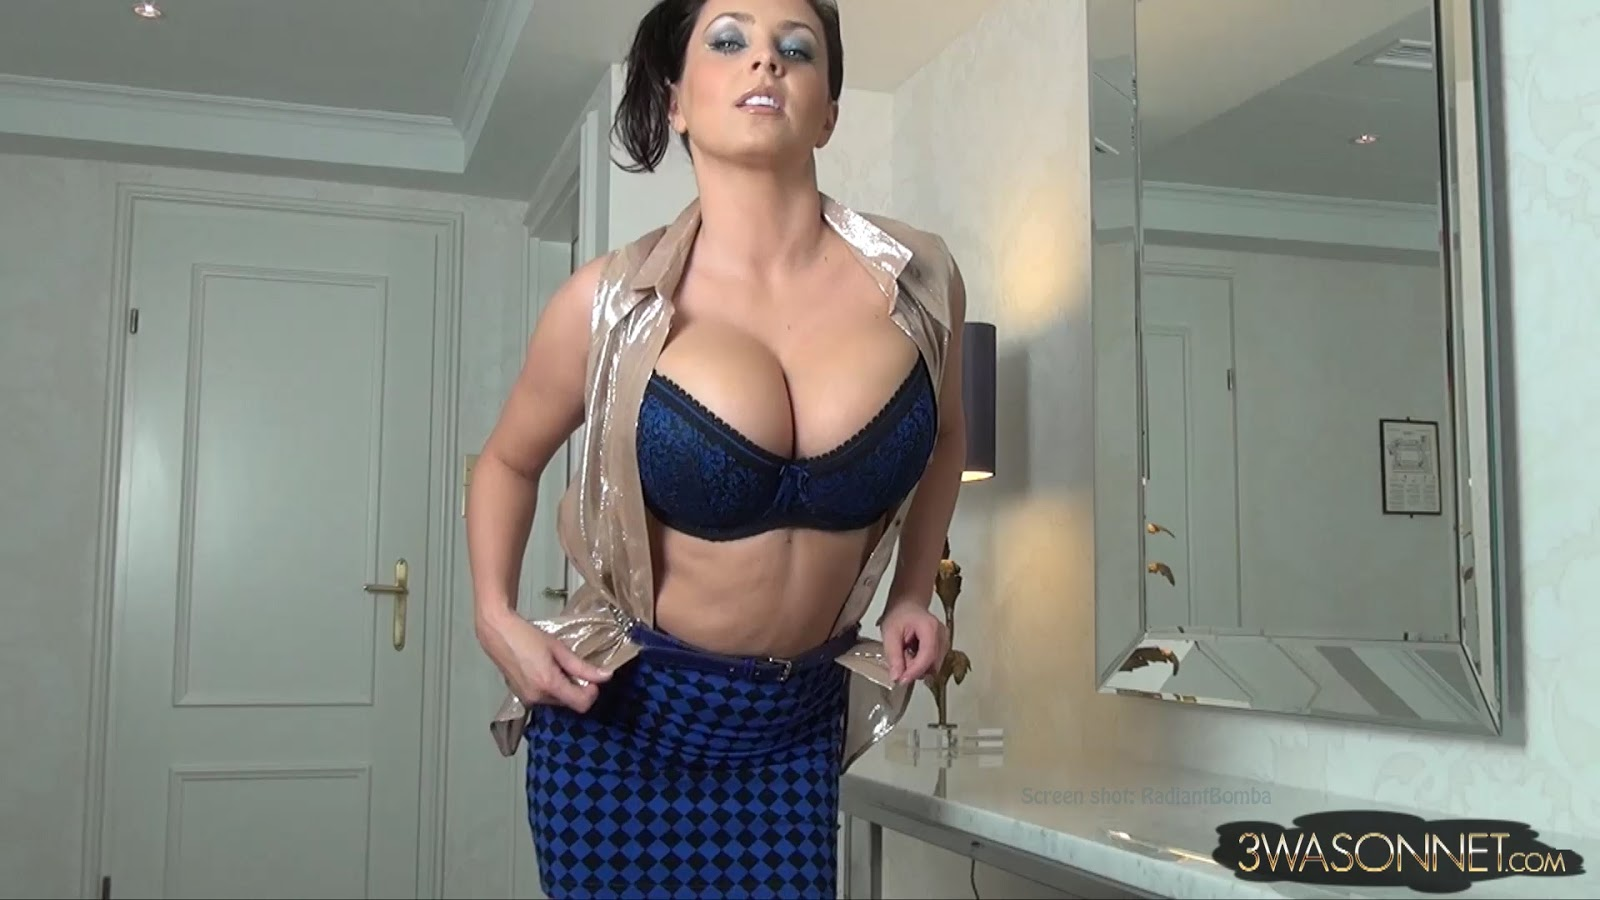 Charming eden mor with an incredibly huge natural boobs 2